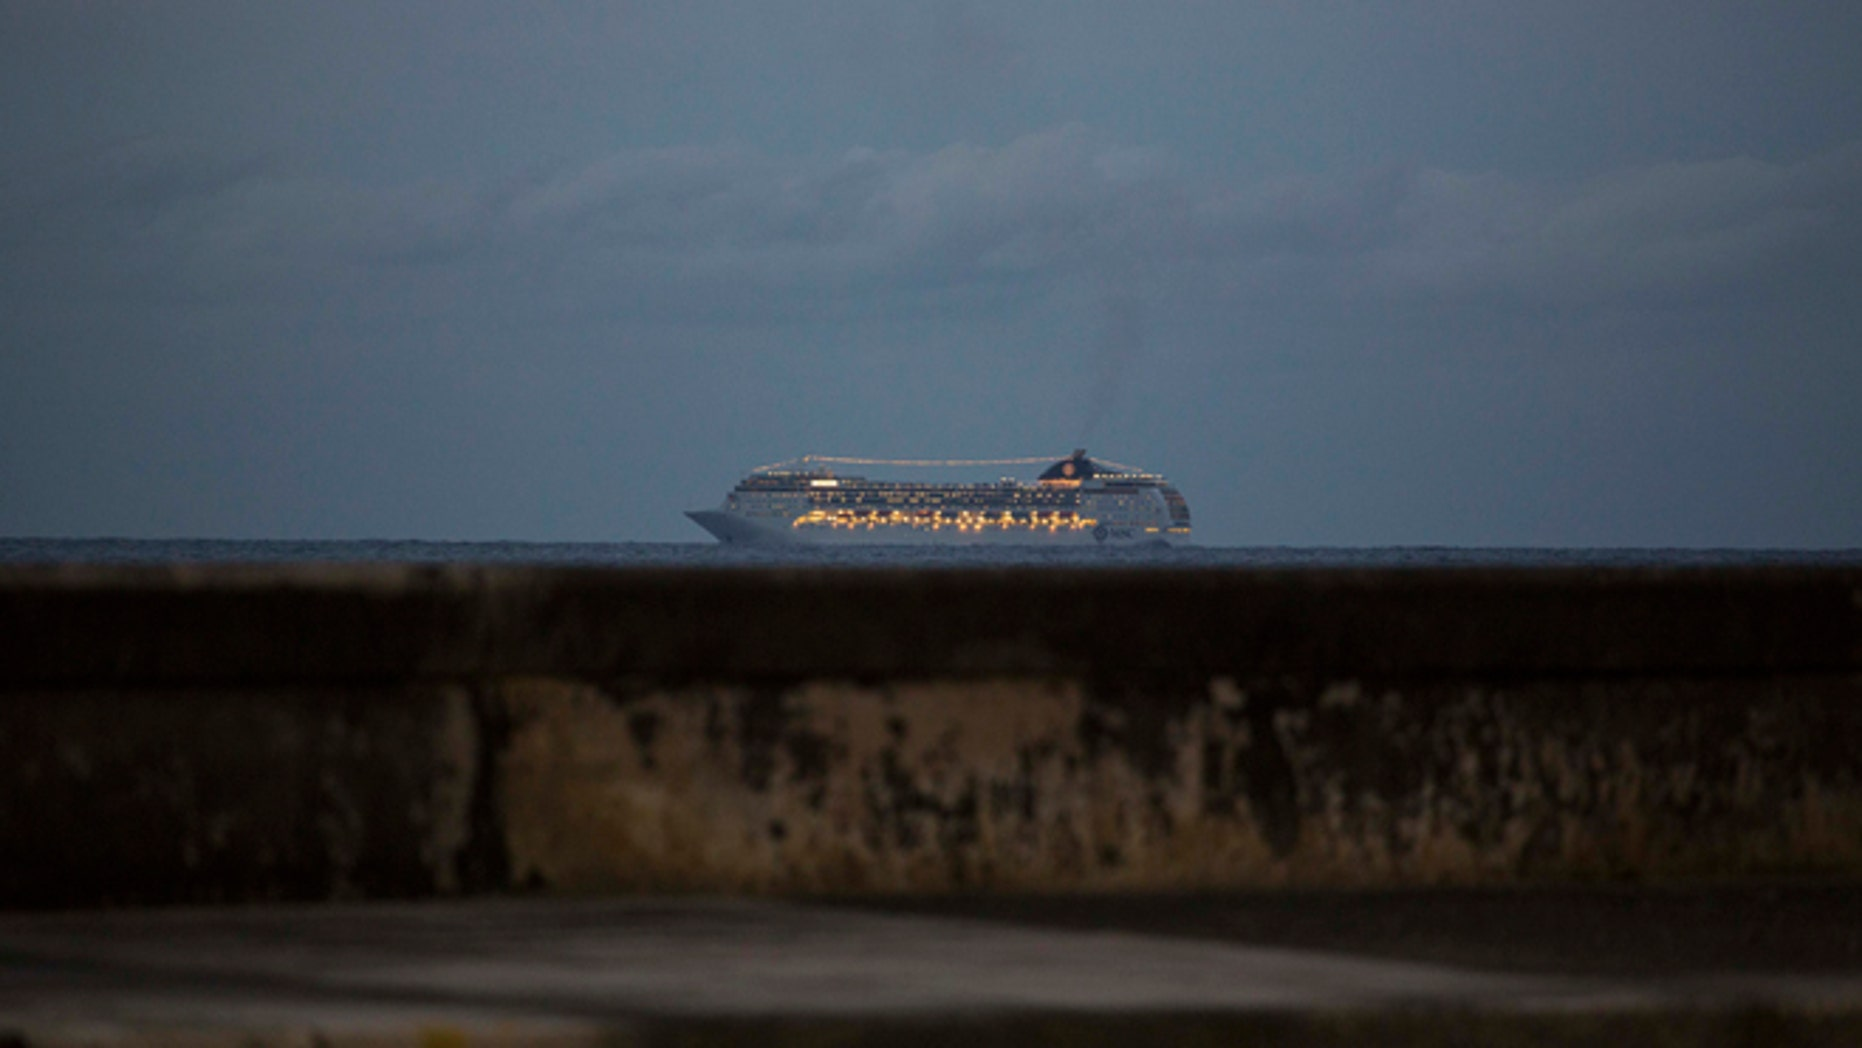 This Jan. 21, 2016 photo shows the MSC Opera cruiser off the coast of Havana as it departs Cuba. Cuban state media announced on Friday, April 22, 2016 the loosening of the government's policy that banned Cuban-born people from arriving by sea. Those prohibitions were put in place in response to Cuban exiles launching attacks from the water in the first years after the Cuban revolution. (AP Photo/Desmond Boylan)